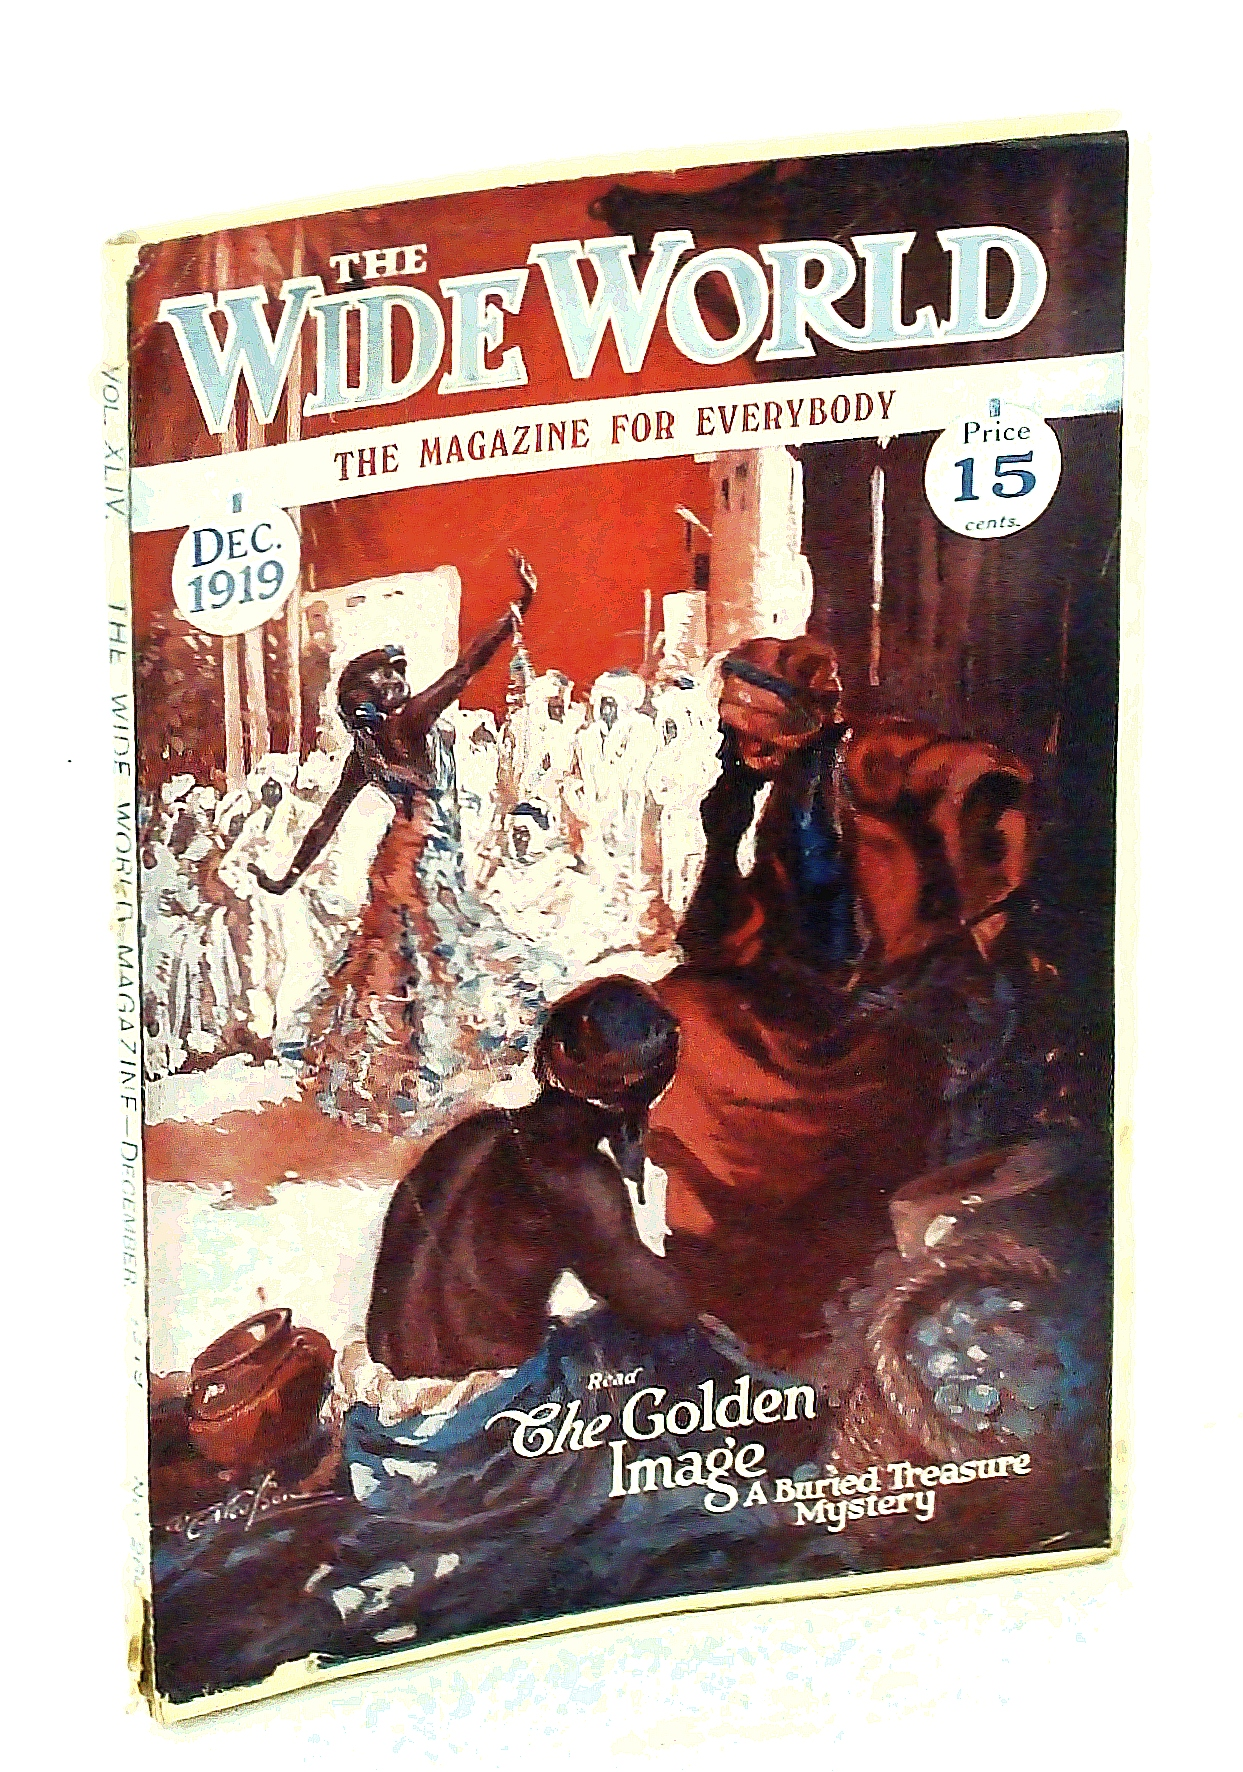 Image for The Wide World Magazine, The Magazine for Everybody, Vol. XLIV, No. 260, December (Dec.) 1919 -  The End of Billy the Kid